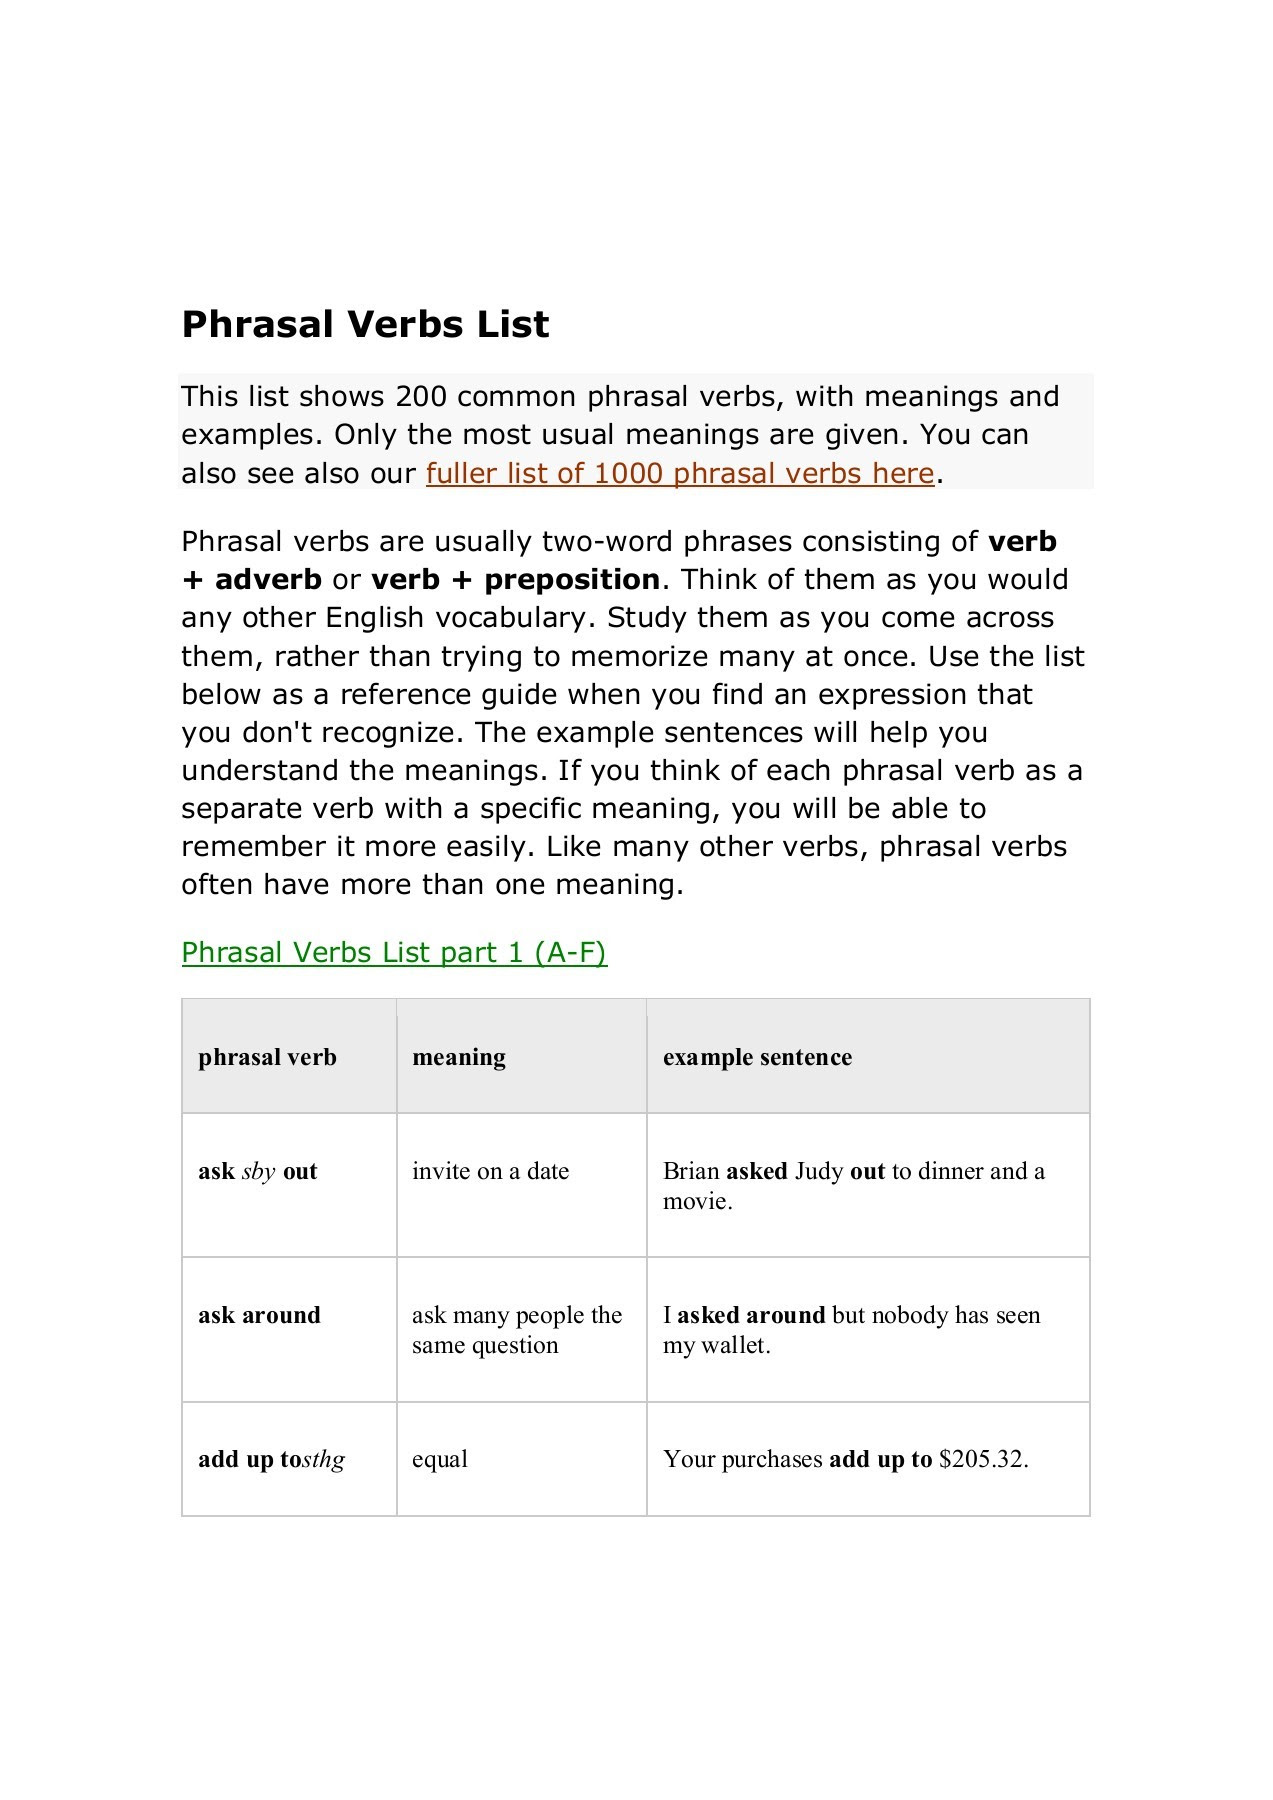 Phrasal Verbs List With Meaning And Sentences